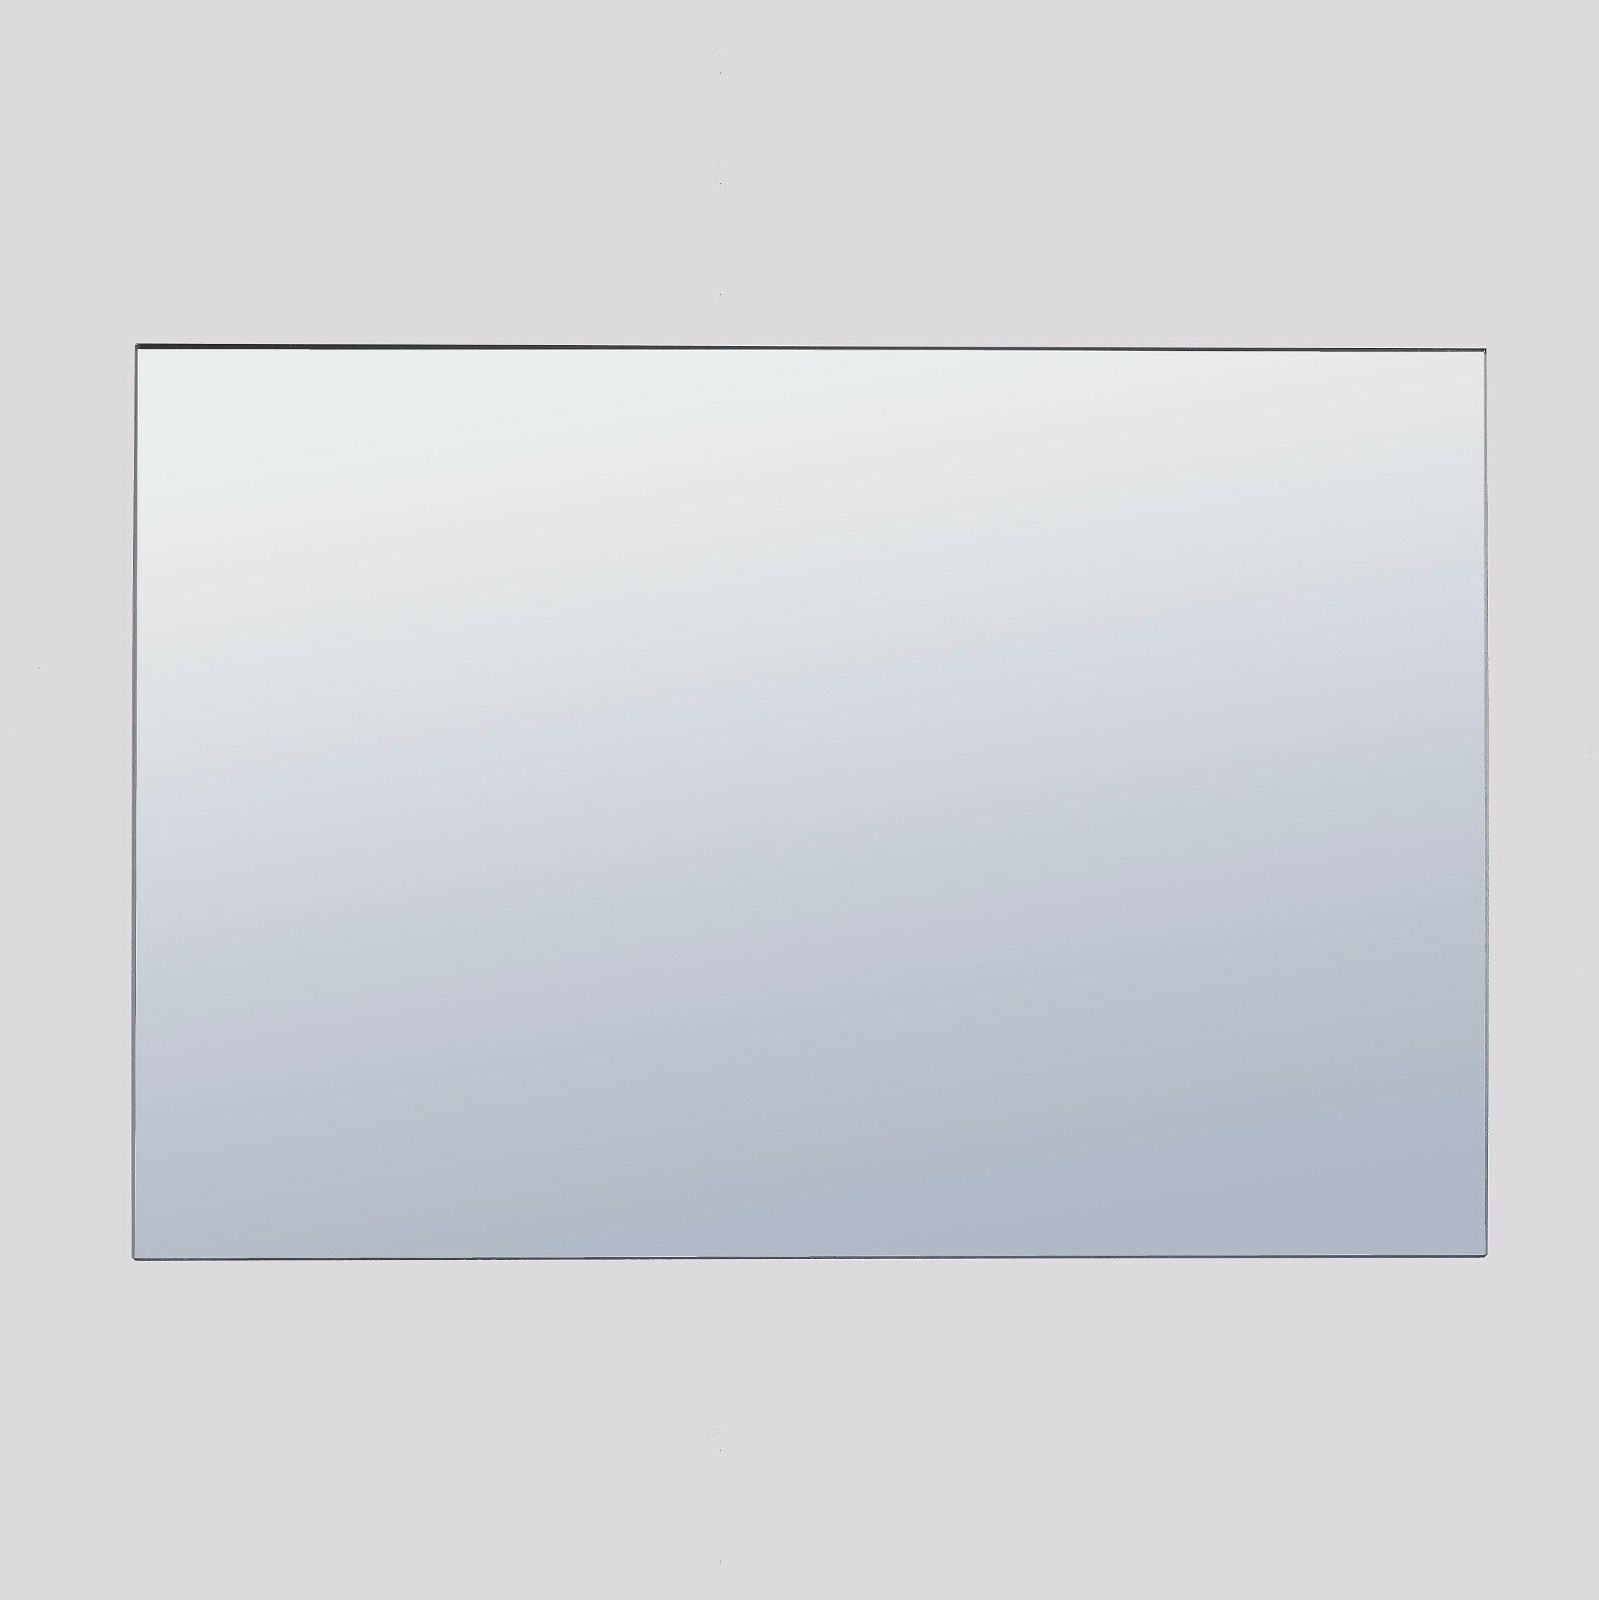 Details About A3 A4 A5 A6 Acrylic Plastic Mirror Shatter Proof Perspex Sheet Tile Wall Mounted In Well Known Shatterproof Wall Mirrors (View 9 of 20)